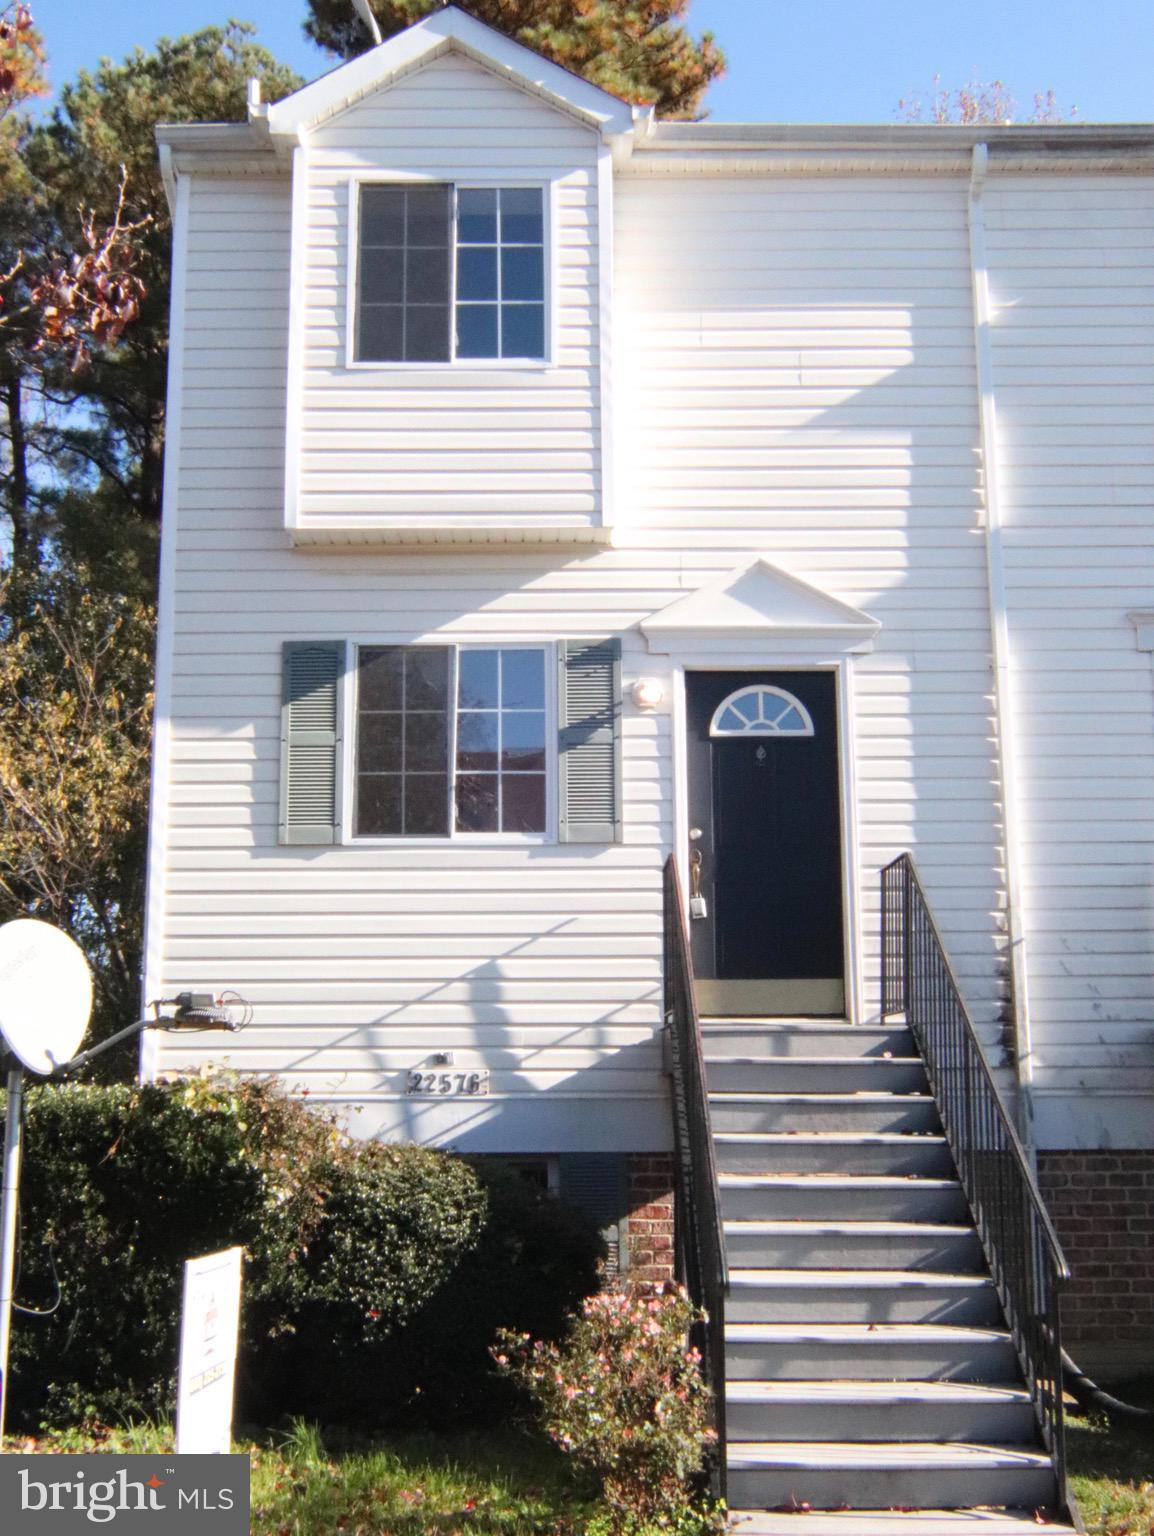 Three level end unit town home in Hickory Hills. Main level foyer with coat closet, half bath, kitch